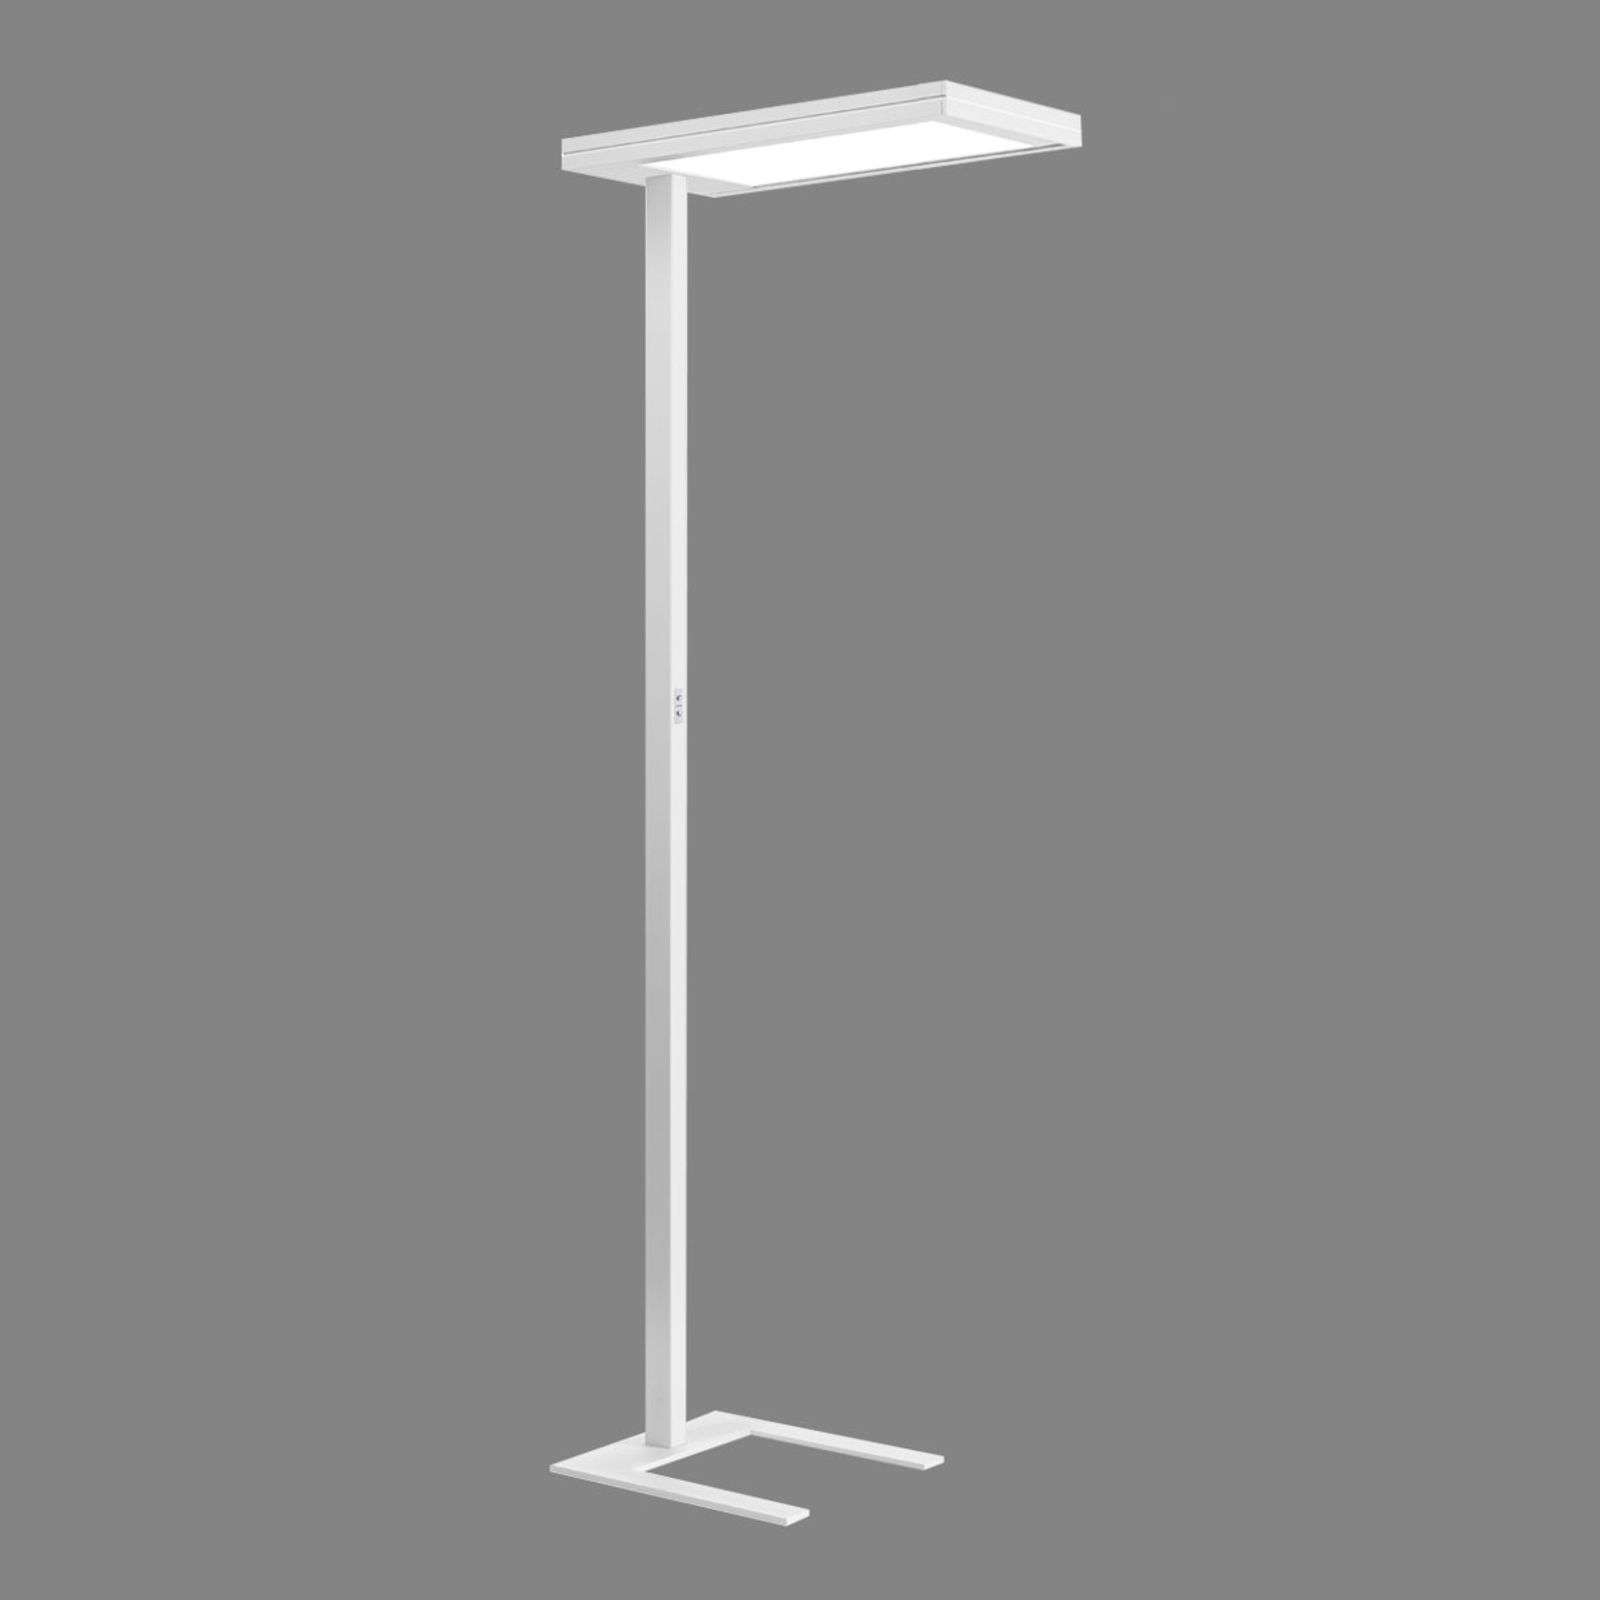 Lampadaire dimmable SL740SL L Eco LED blanc